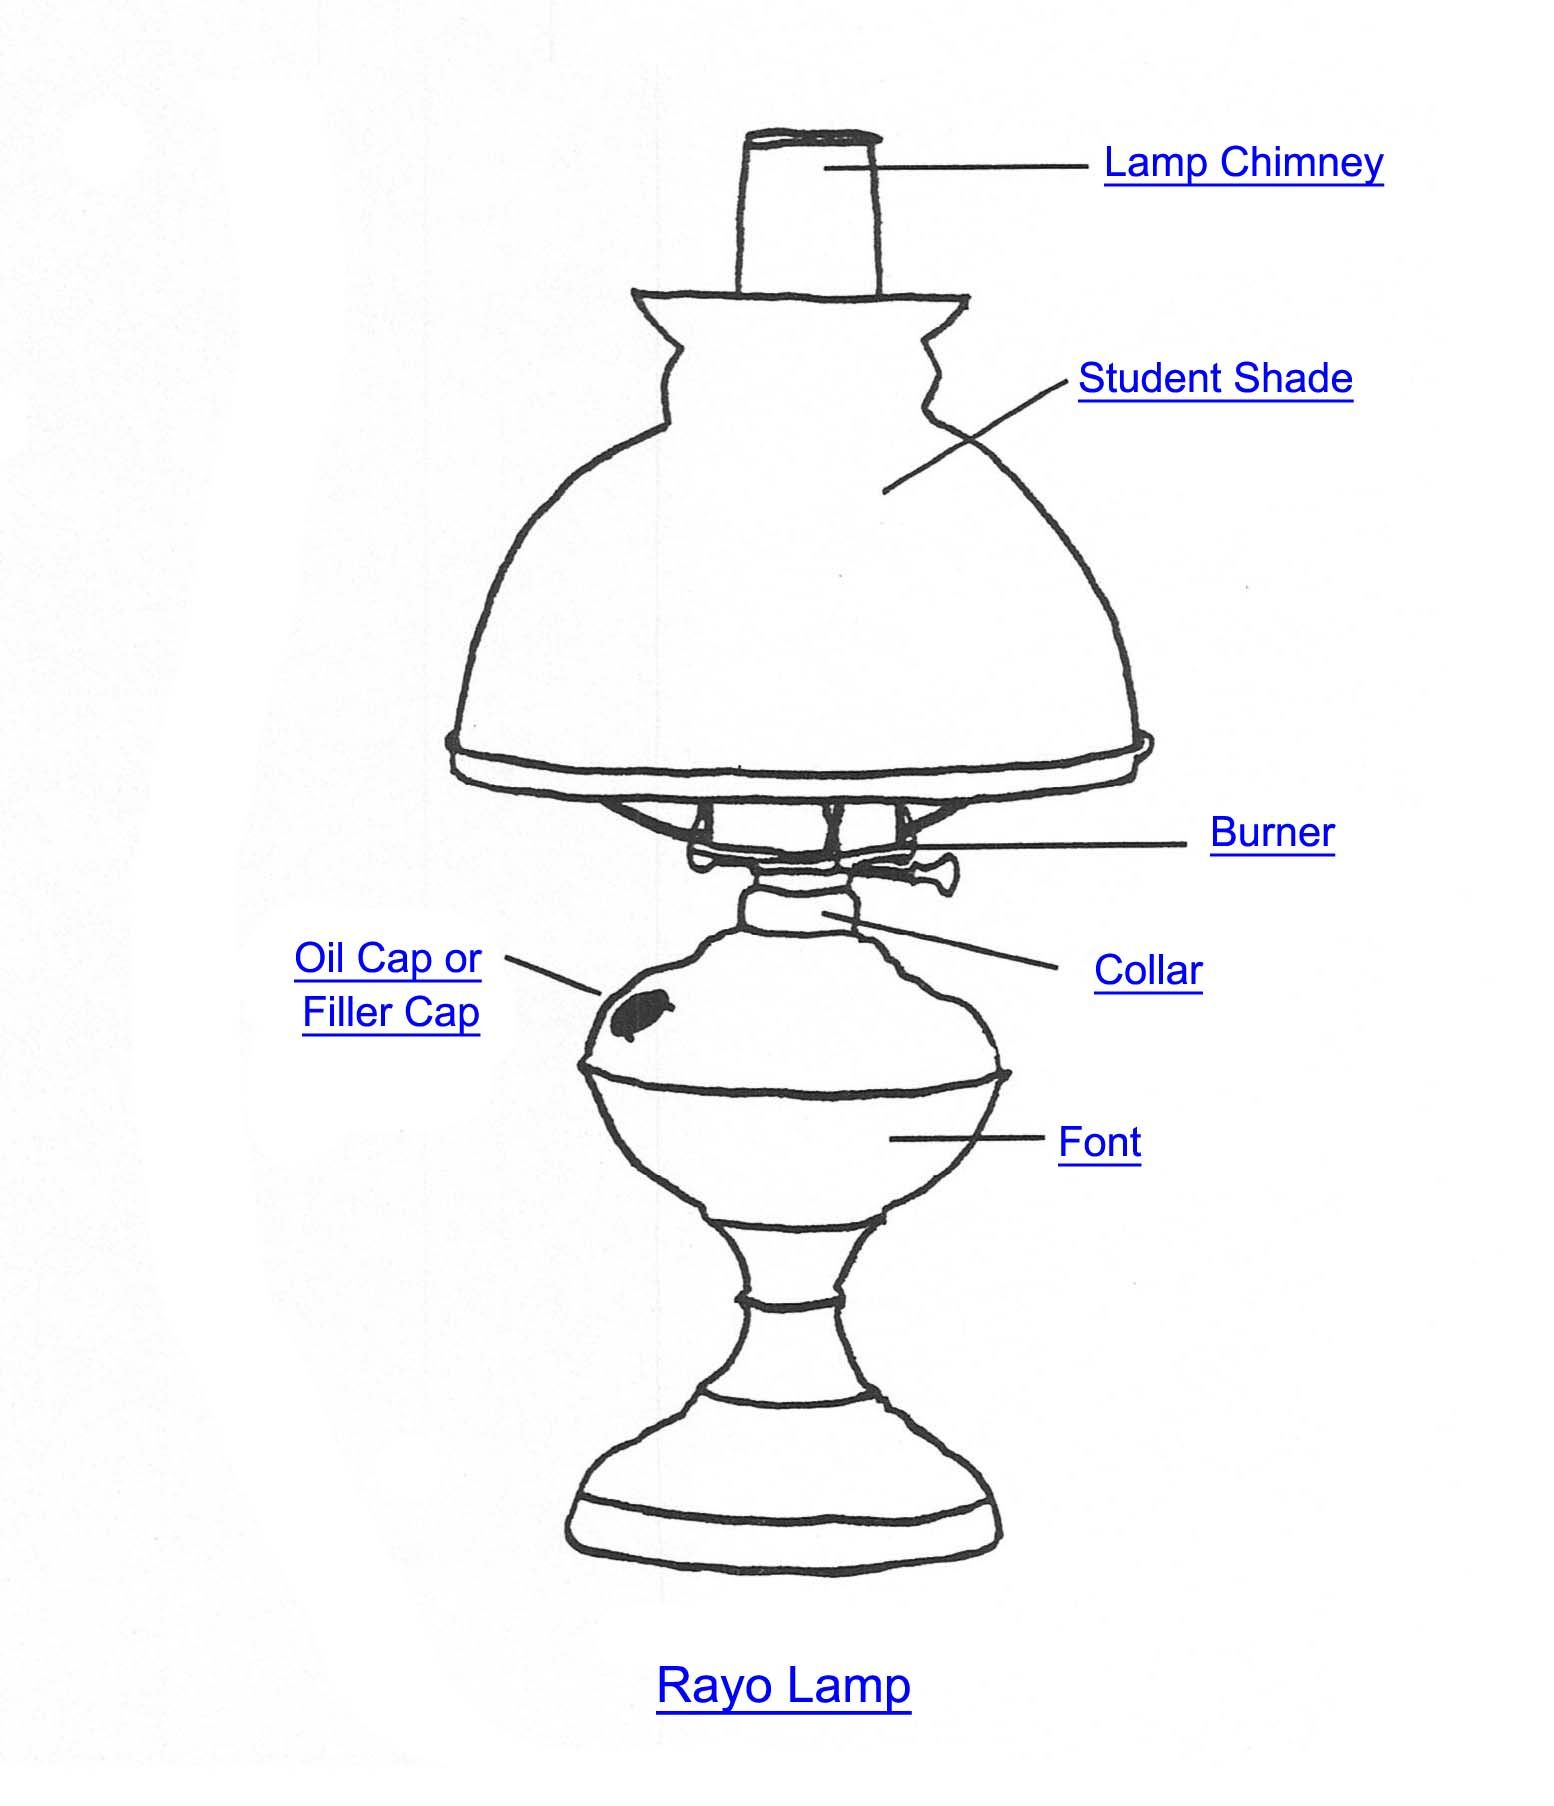 Find This Pin And More On Lamp Parts By Fandpicasso.